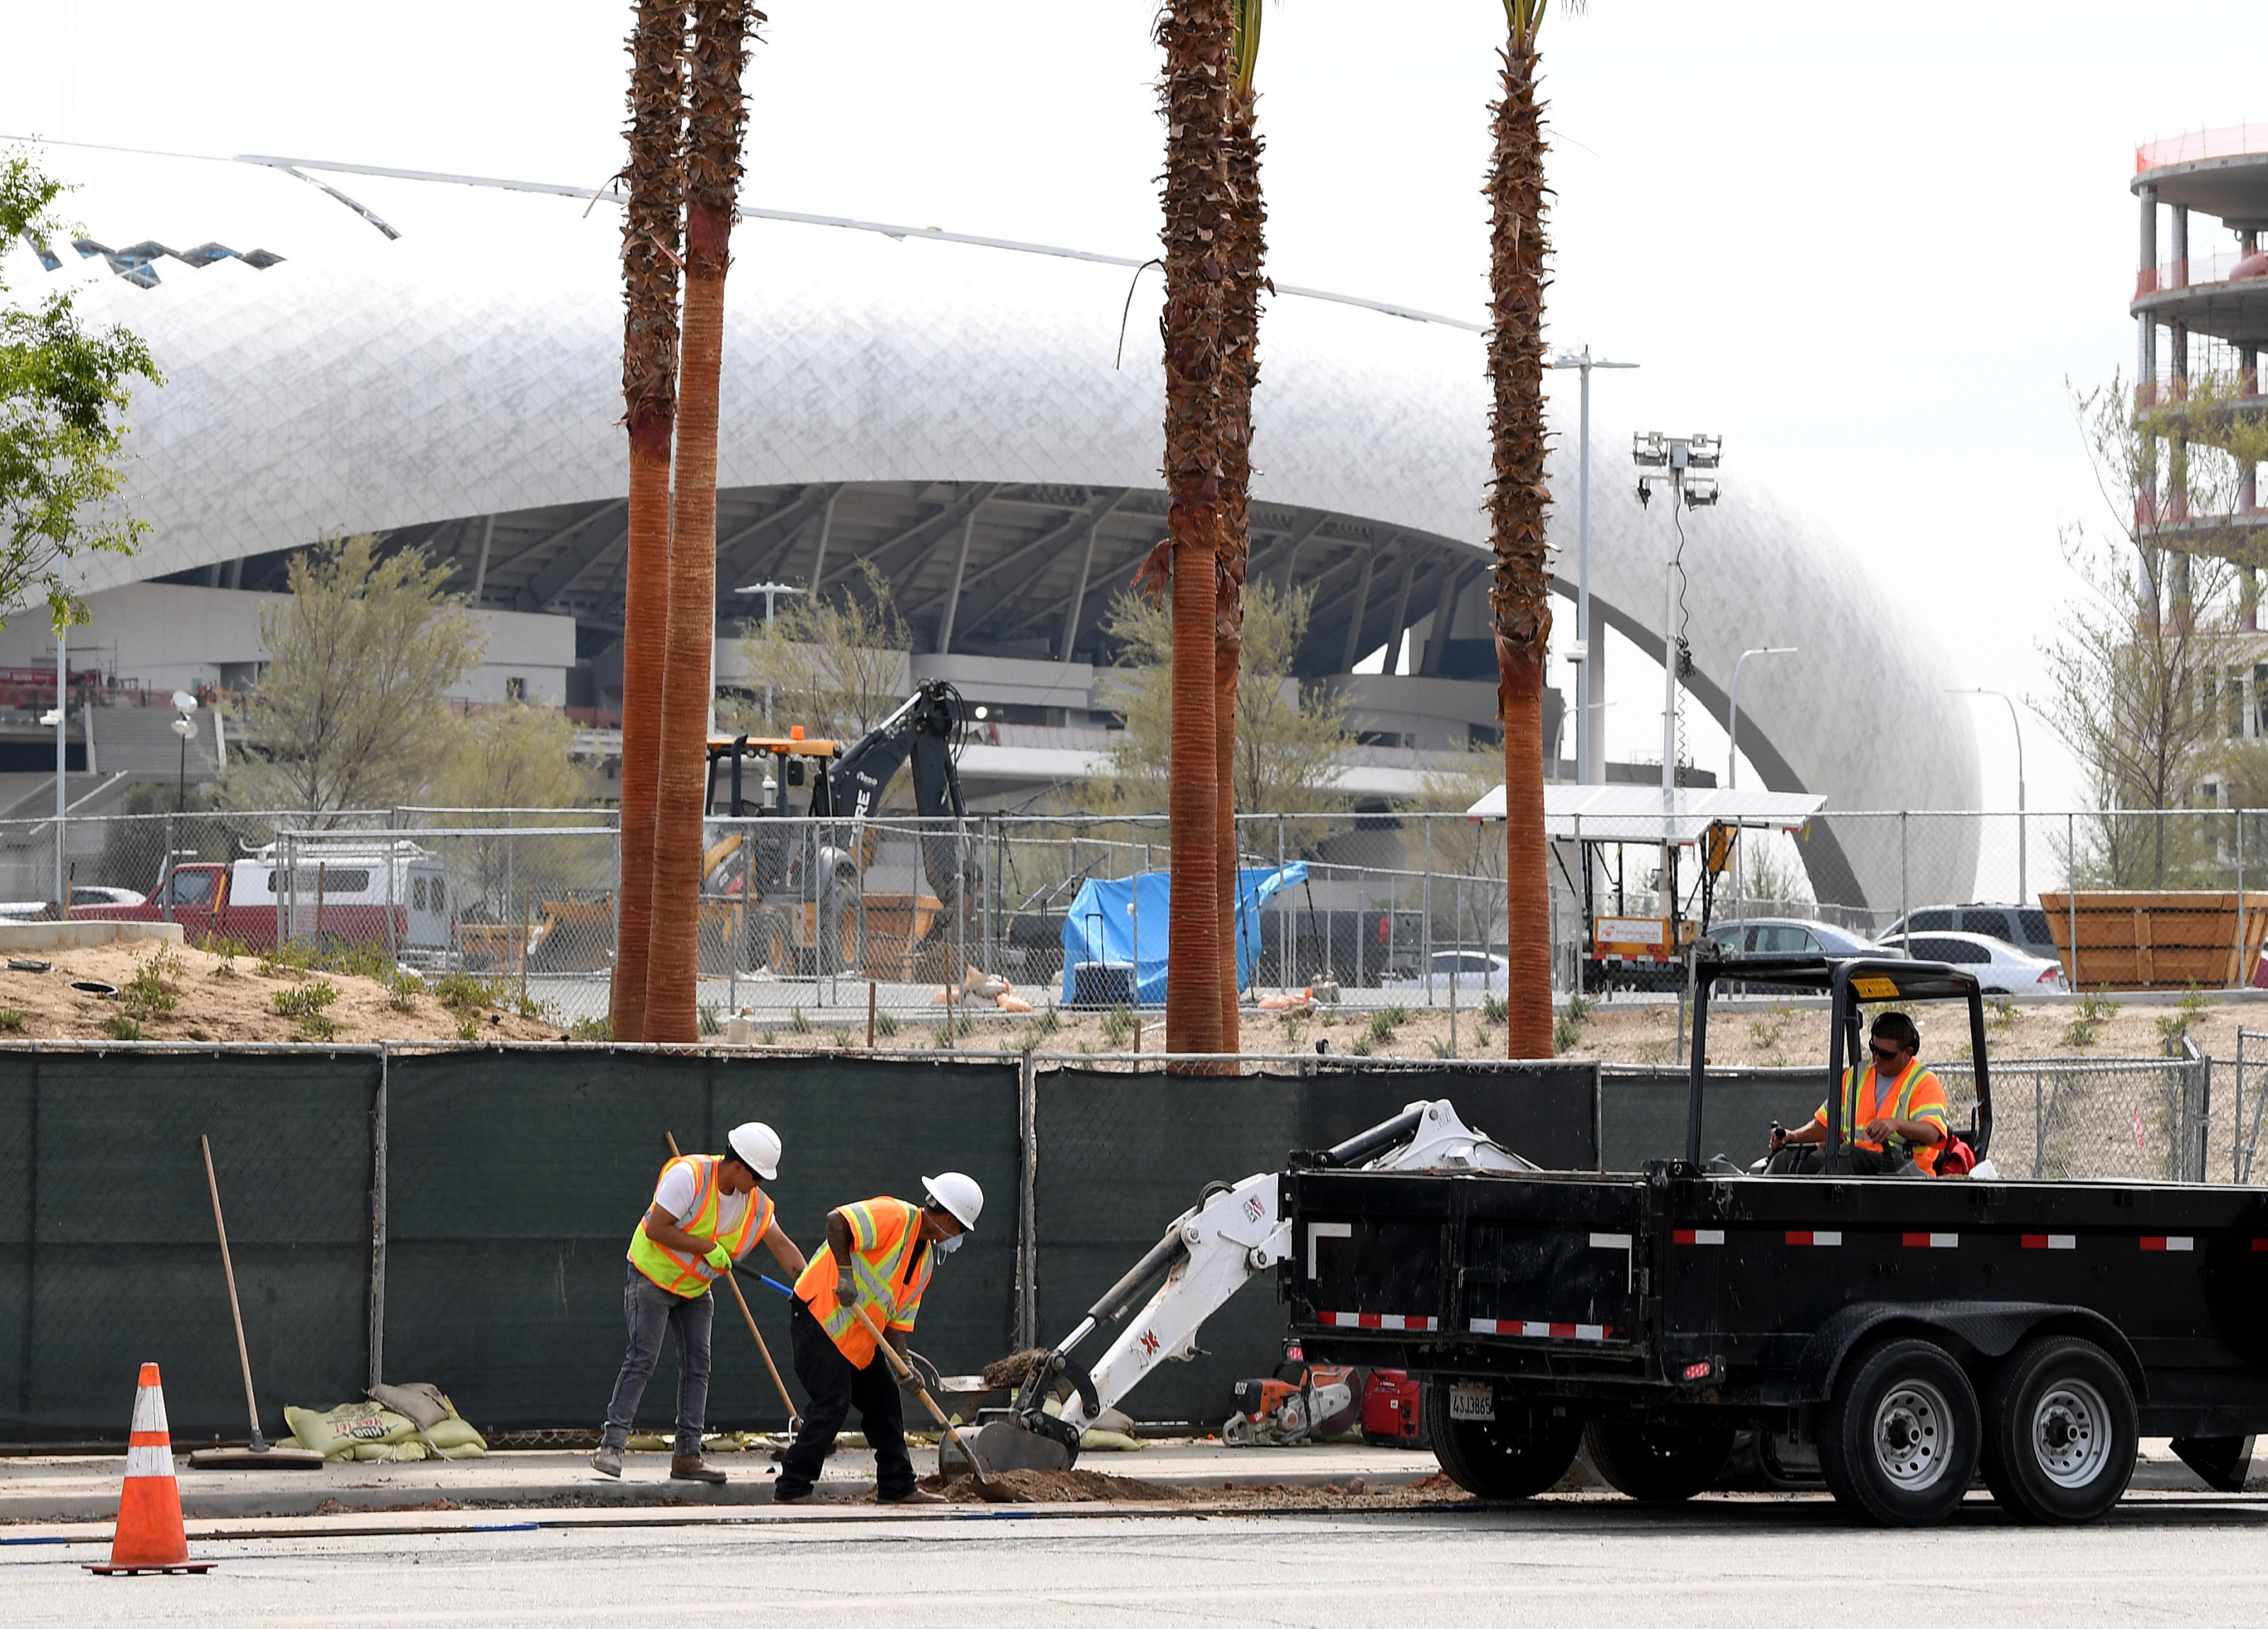 LA Rams SoFi Stadium faces as many questions this year as do the Rams